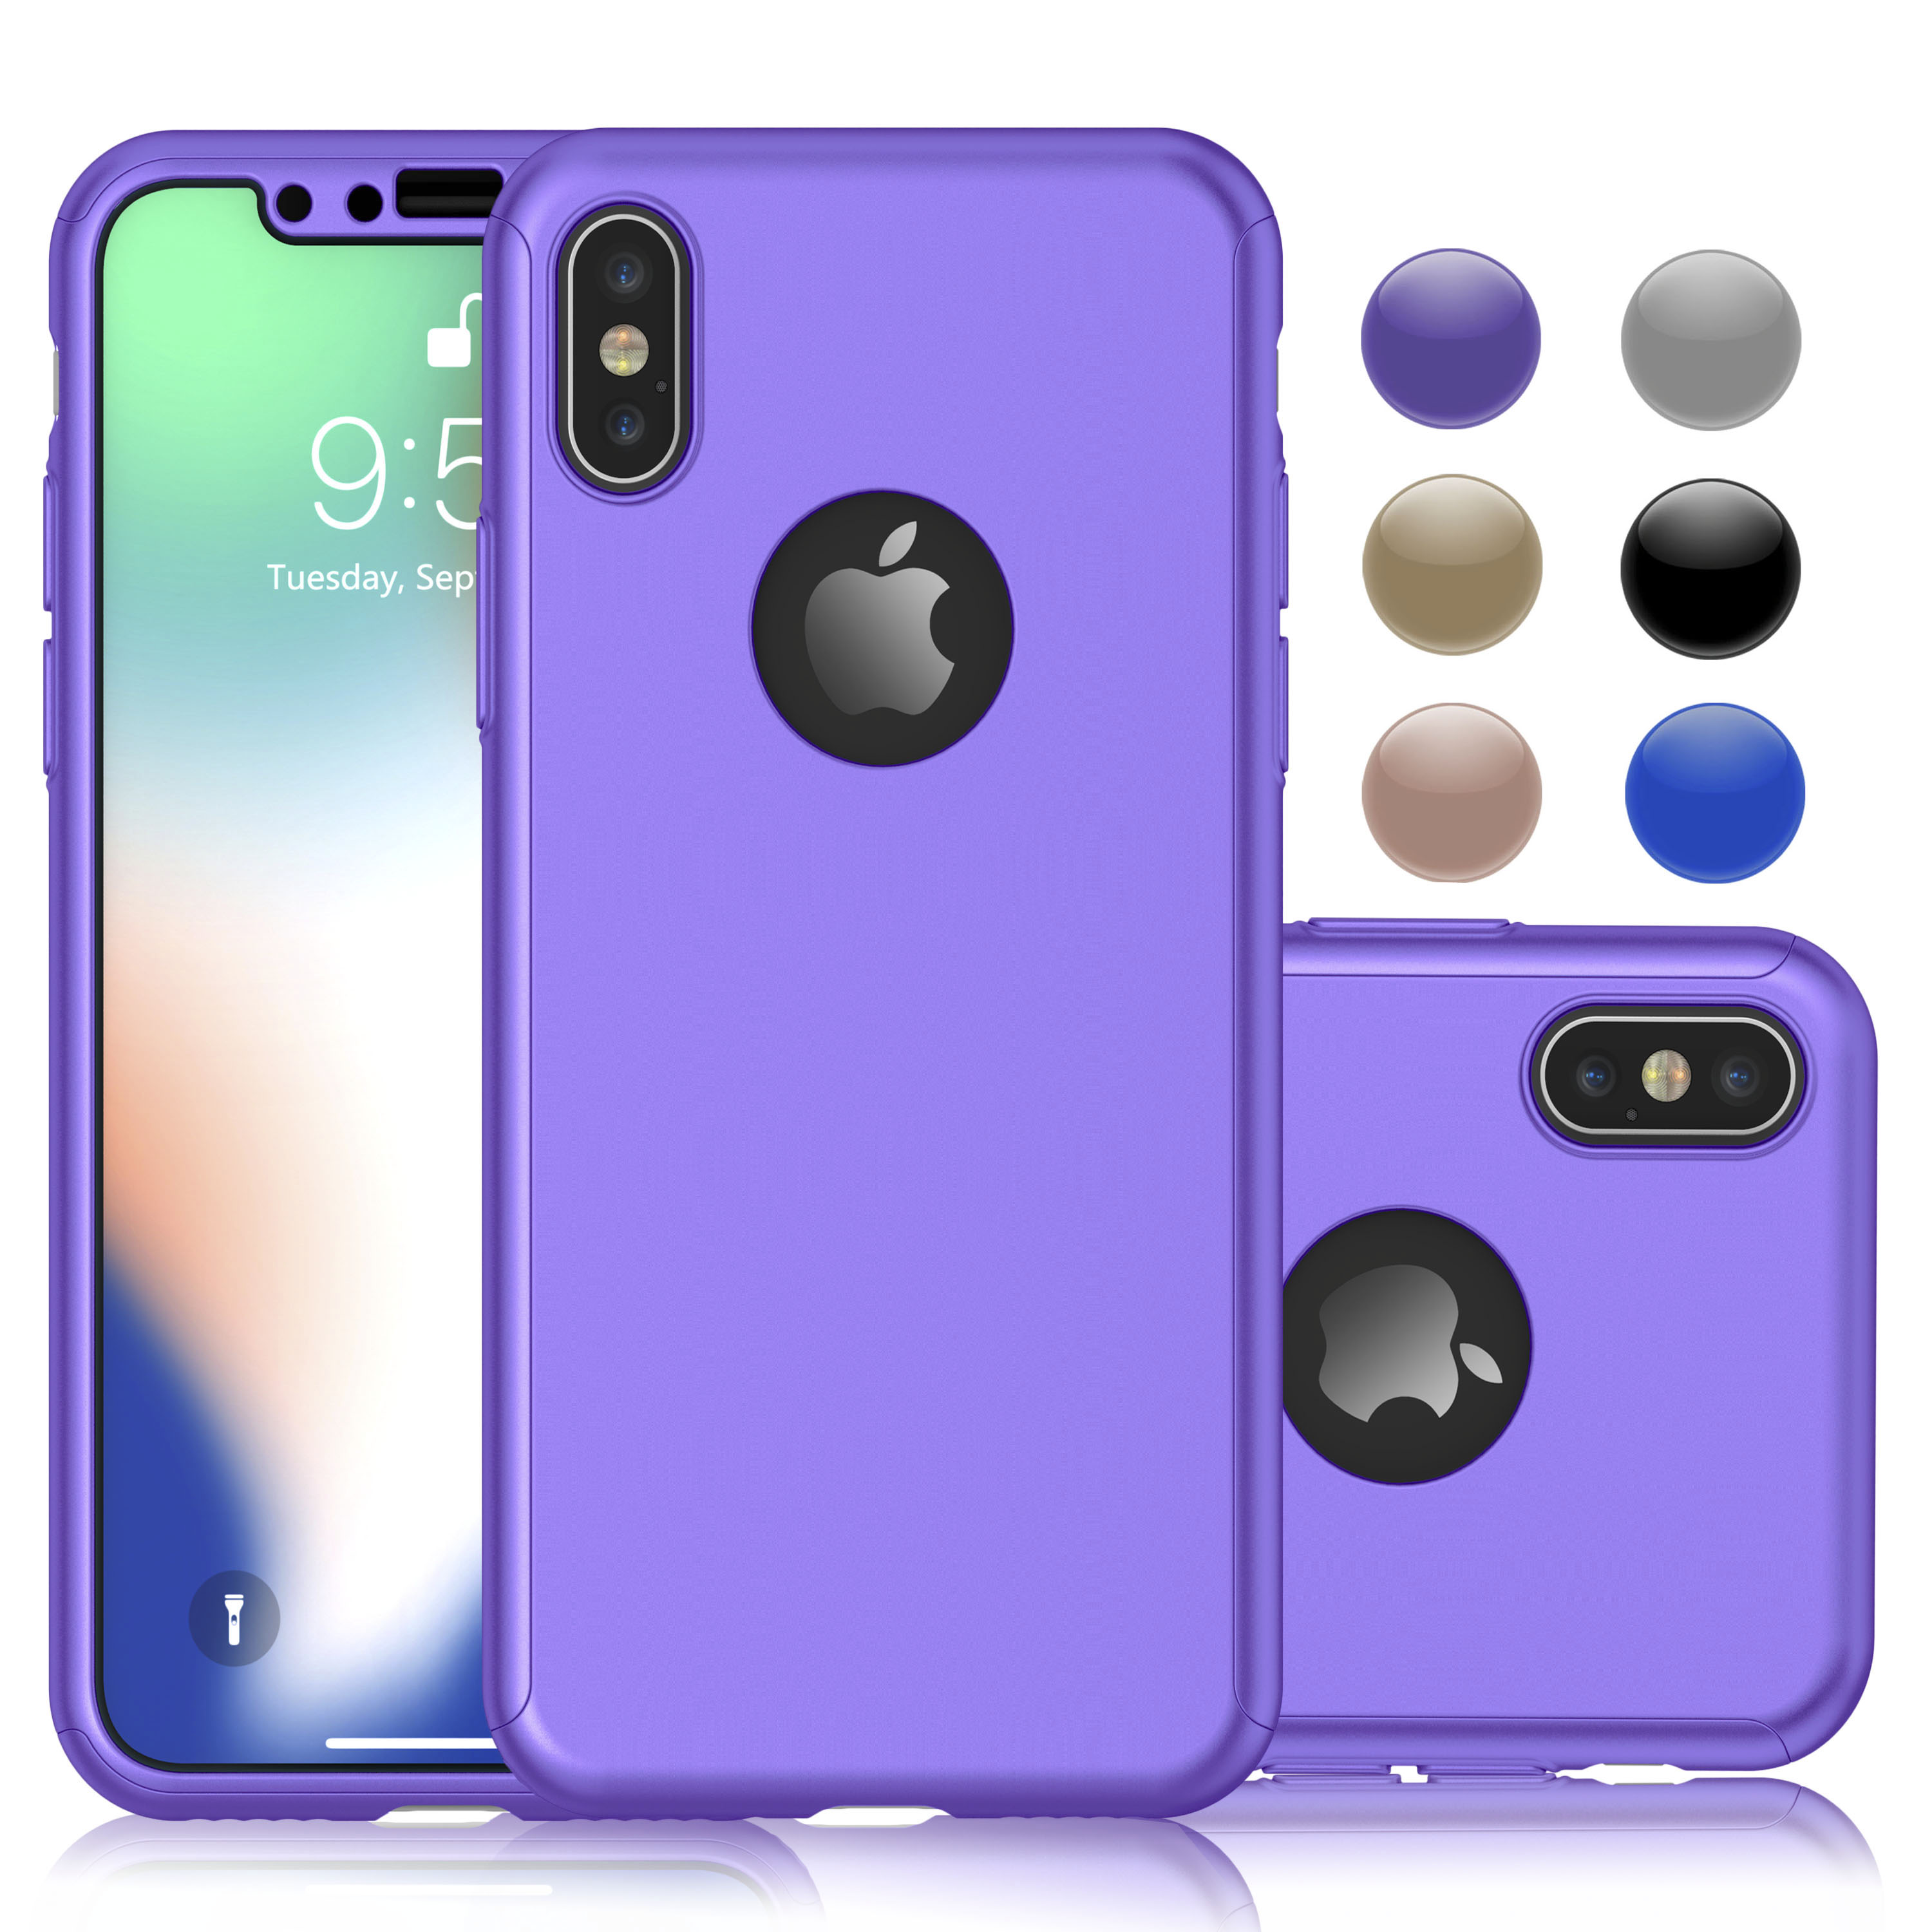 iPhone X Case, iPhone X Full Body Case, Njjex 360 Degree Protection Ultra Thin Hard Slim Case Coated Non Slip Matte Surface with Screen Protector For Apple iPhone X 2017 / iPhone 10 Release -Blue